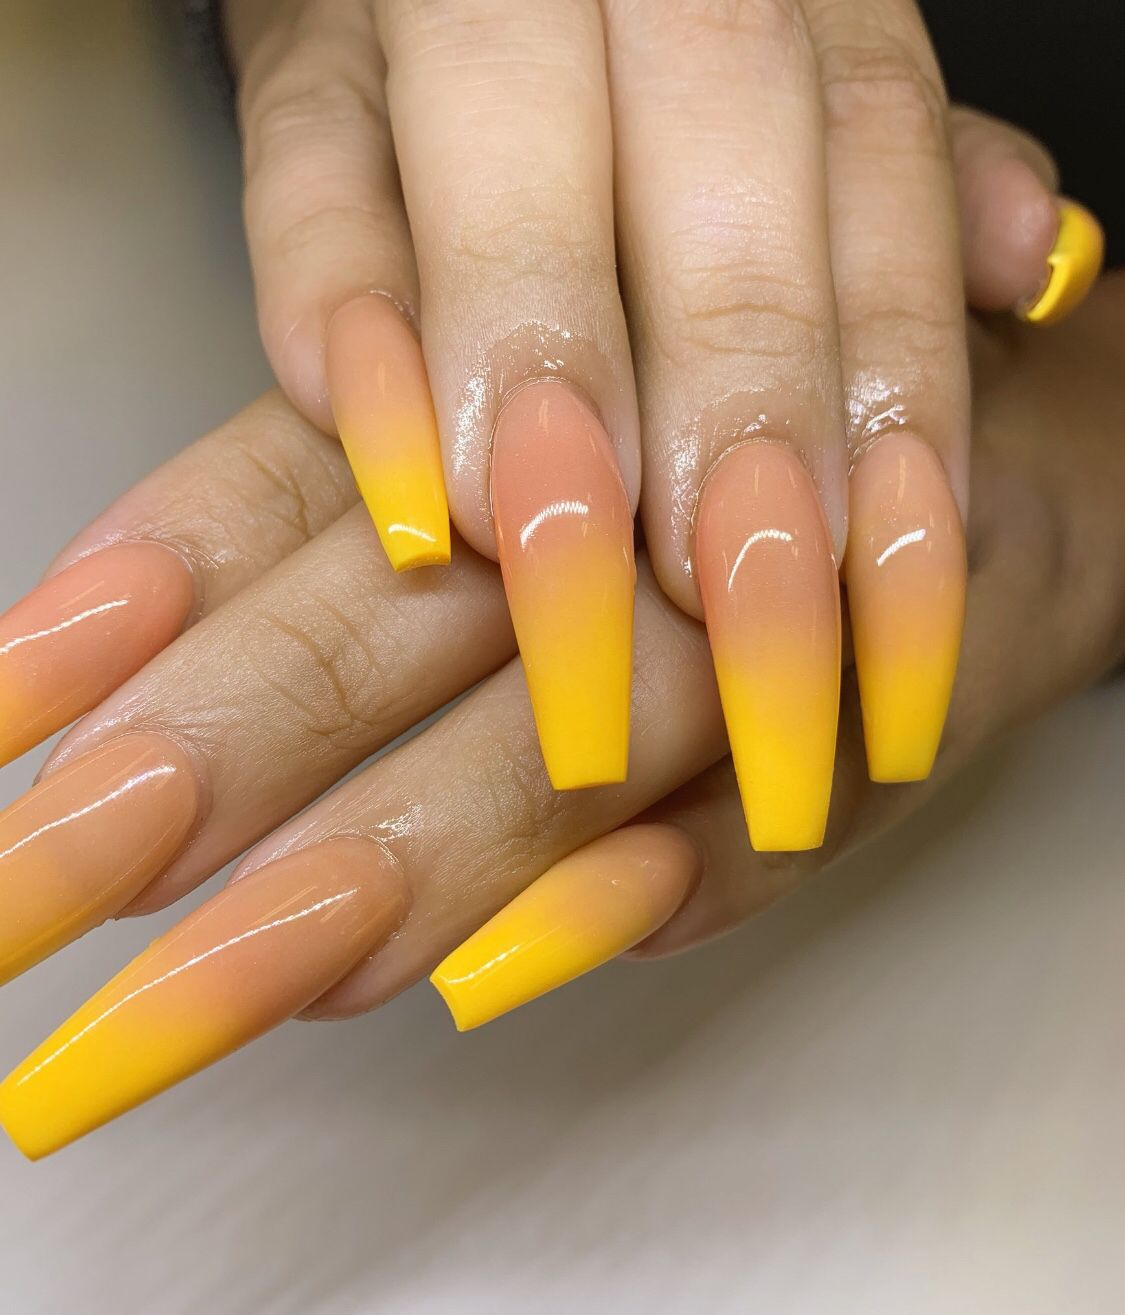 #grabbers #longnails #nails #nailporn #lemonade #yellow